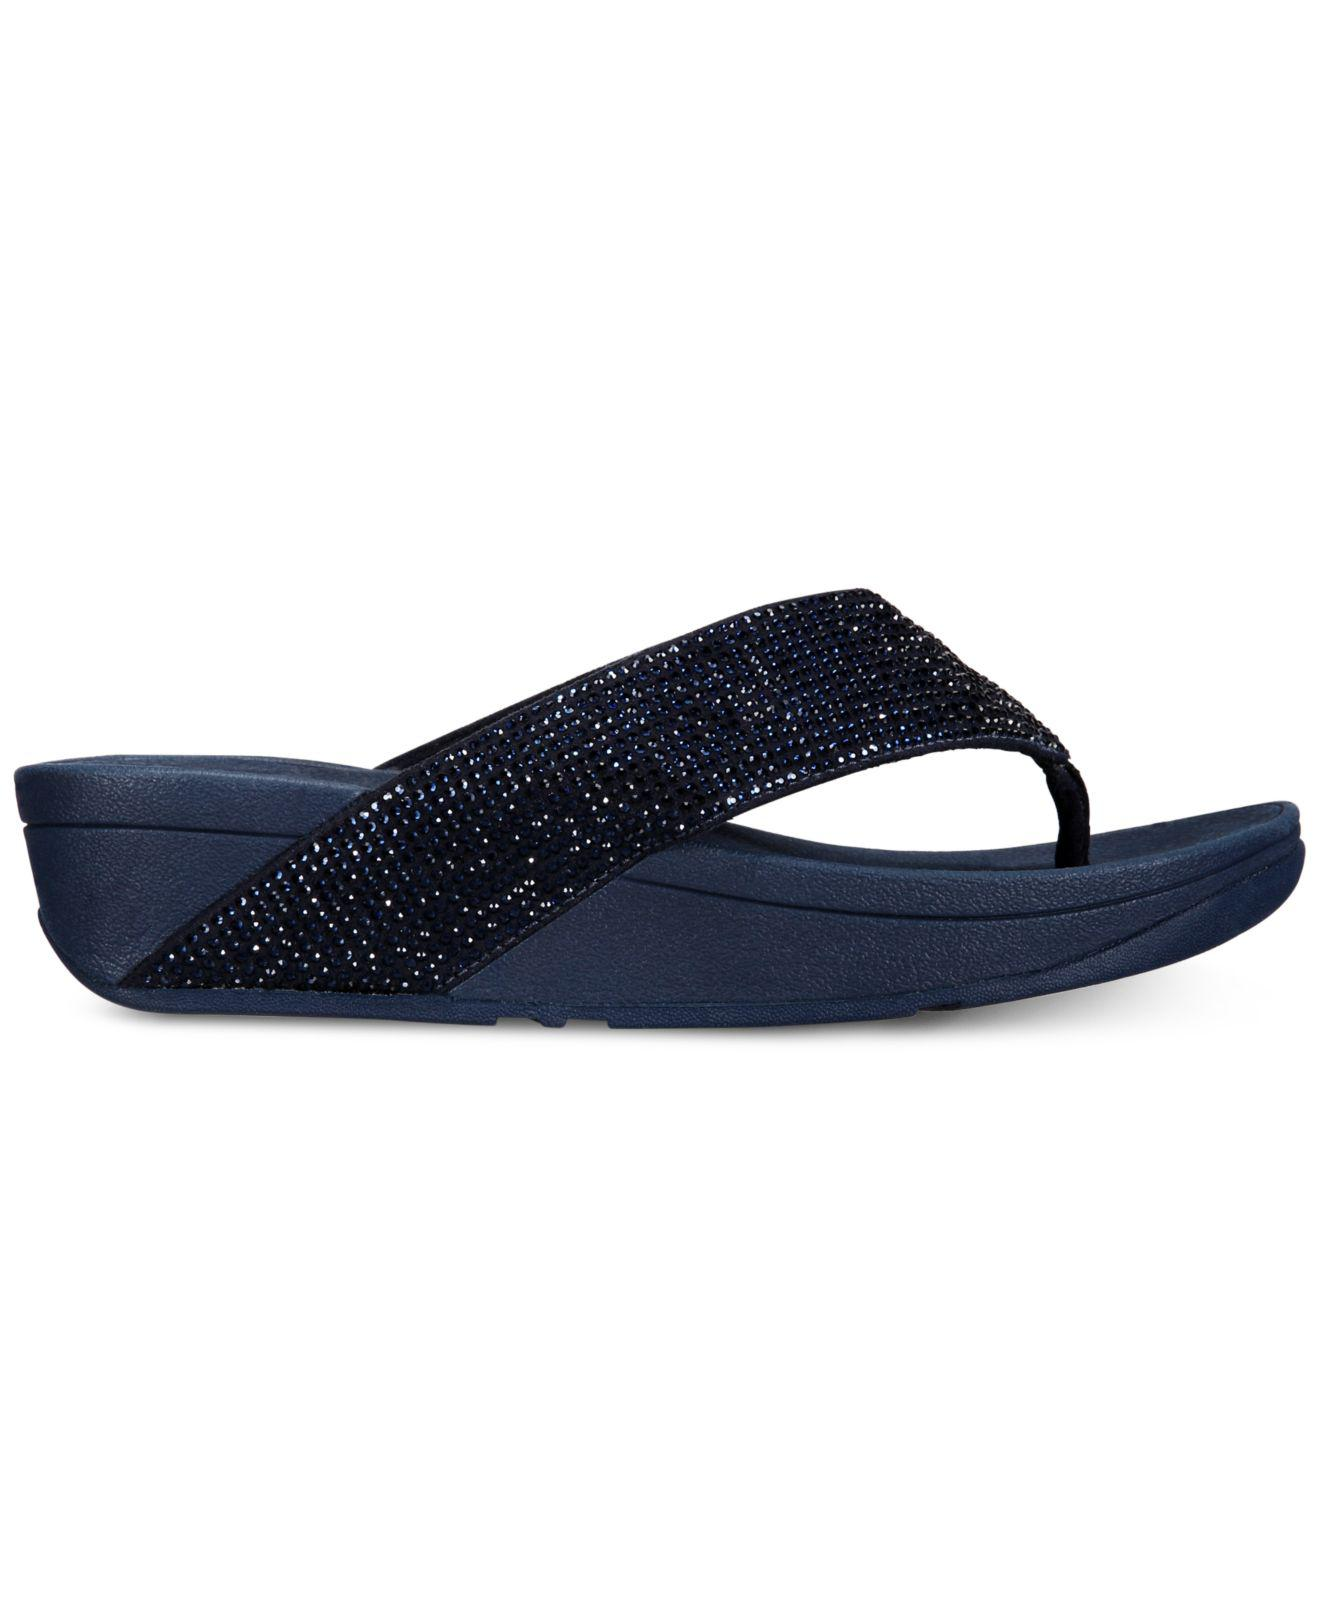 3f4023678 Lyst - Fitflop Ritzy Toe-thong Sandals in Blue